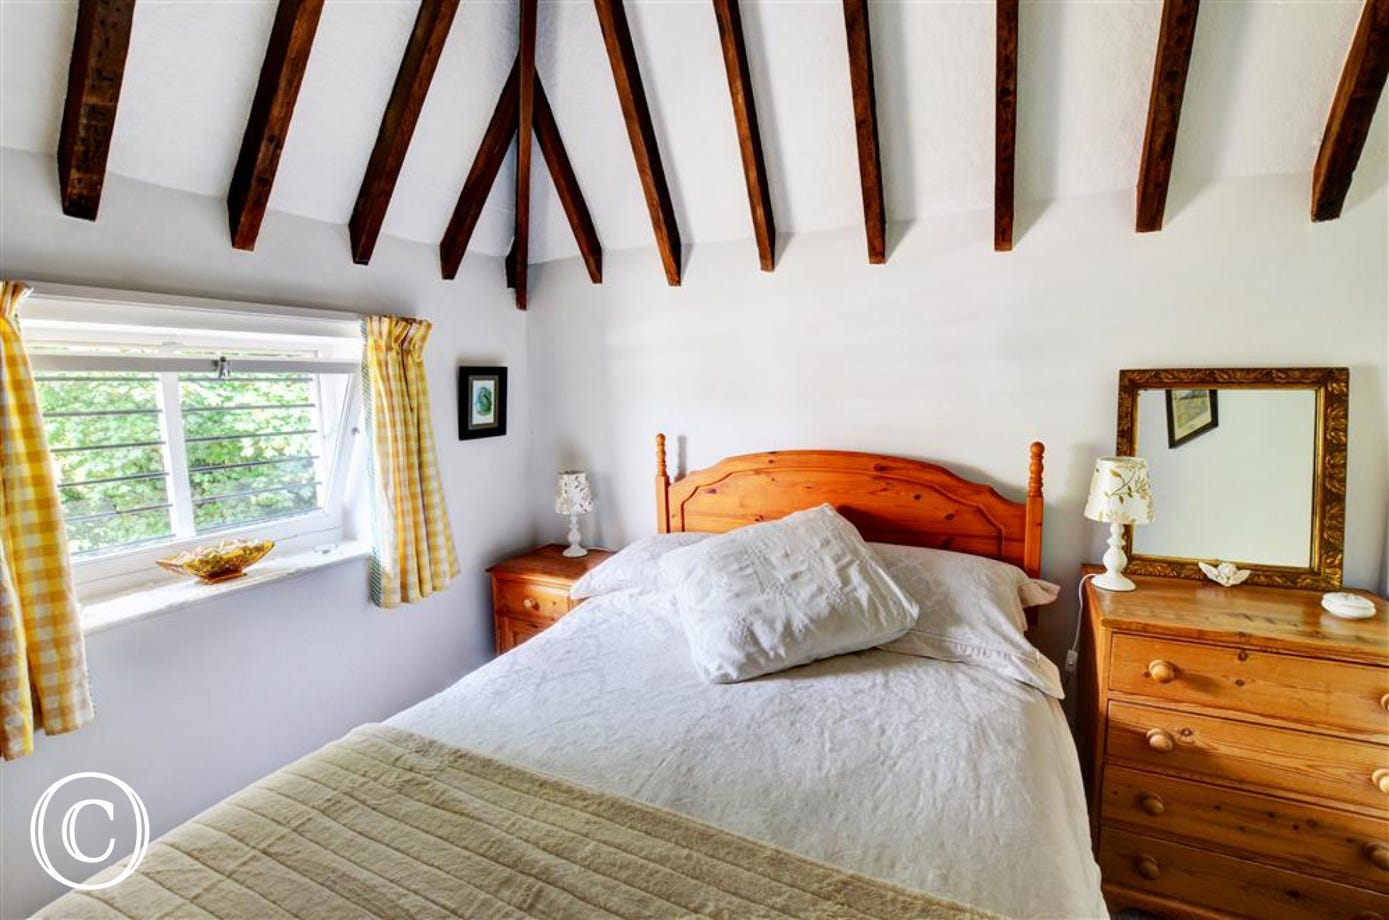 Bedroom one with a double bed and stunning open beams